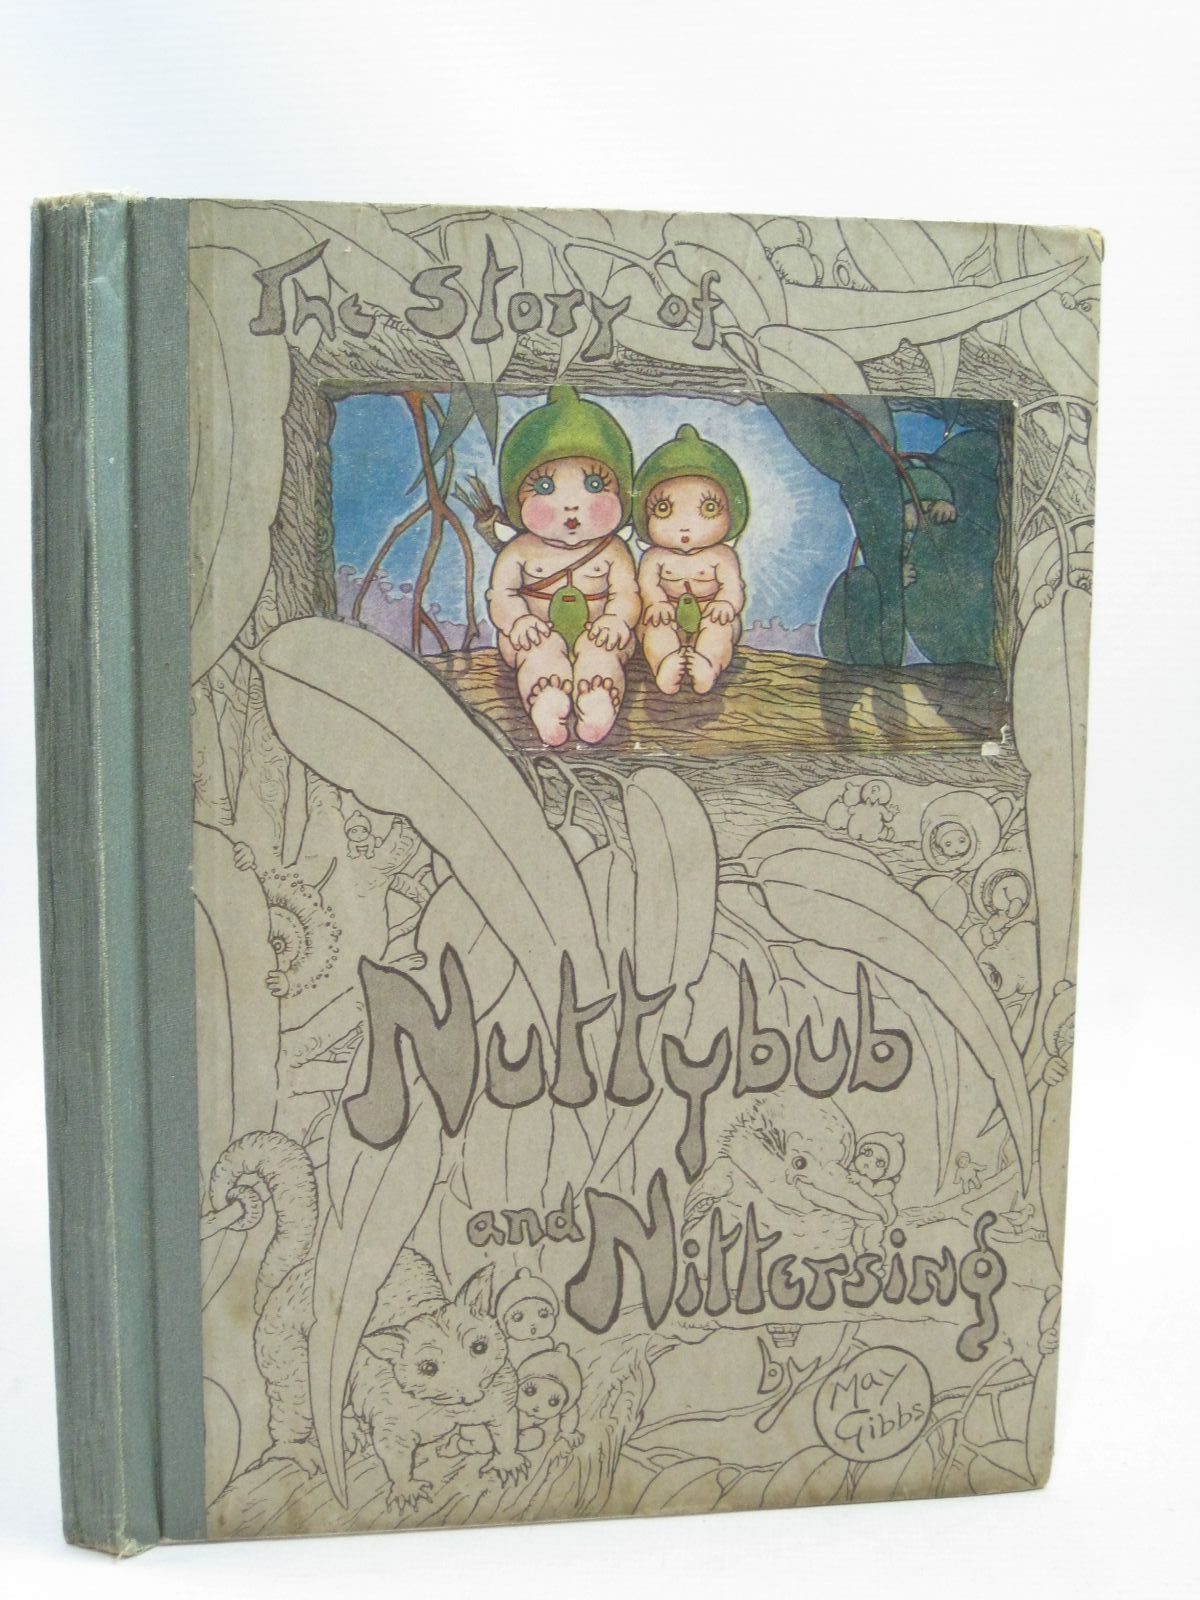 Photo of THE STORY OF NUTTYBUB AND NITTERSING written by Gibbs, May illustrated by Gibbs, May published by Osboldstone & Co. Pty. Ltd (STOCK CODE: 1316209)  for sale by Stella & Rose's Books